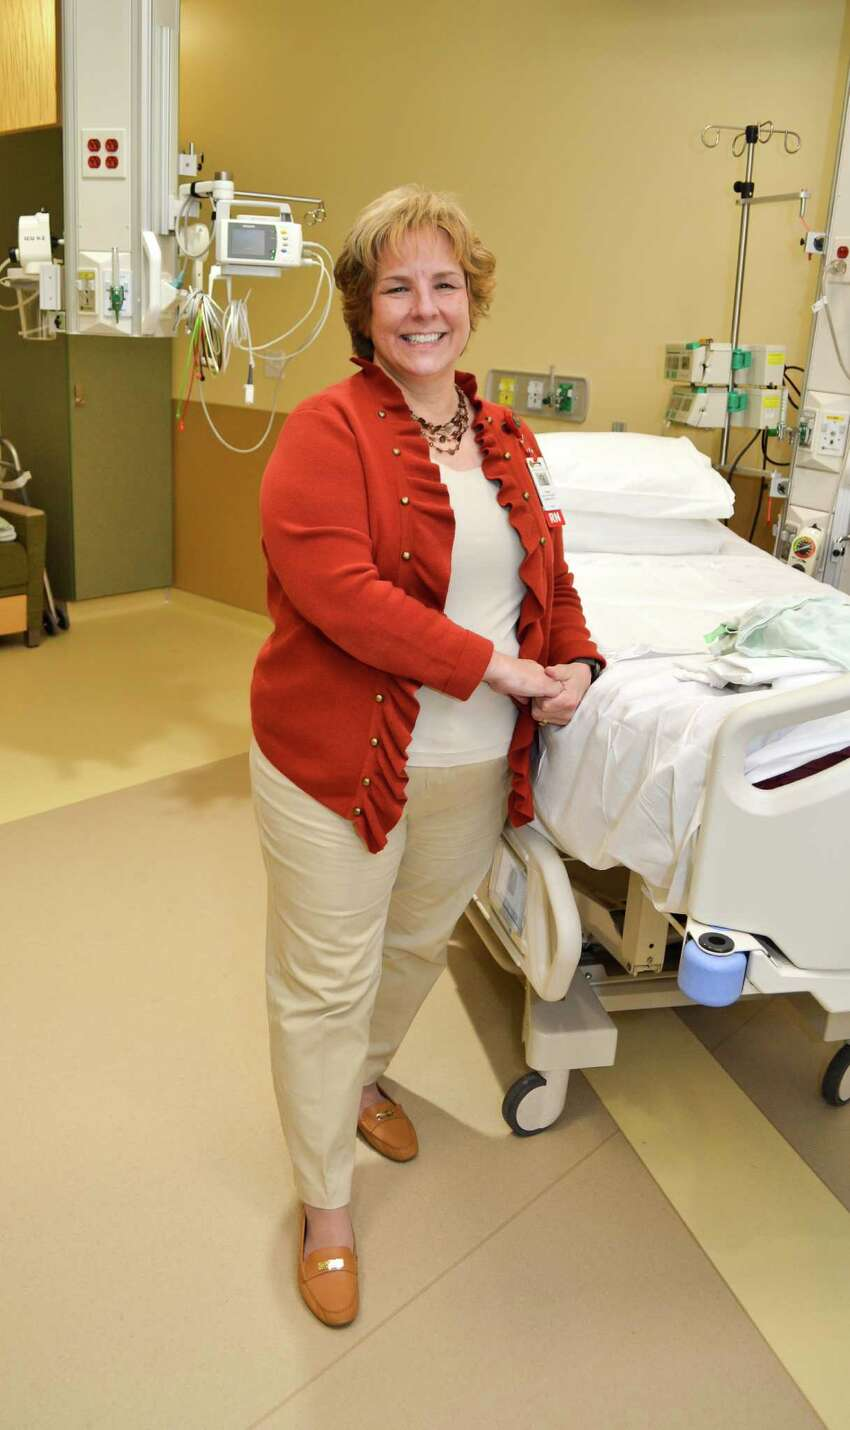 Diane Bartos, Administrative Director of Critical Care and Cardiology Services at Saratoga Hospital, in the ICCU at Saratoga Hospital, on Friday, December 2, 2016. (Colleen Ingerto / Times Union)